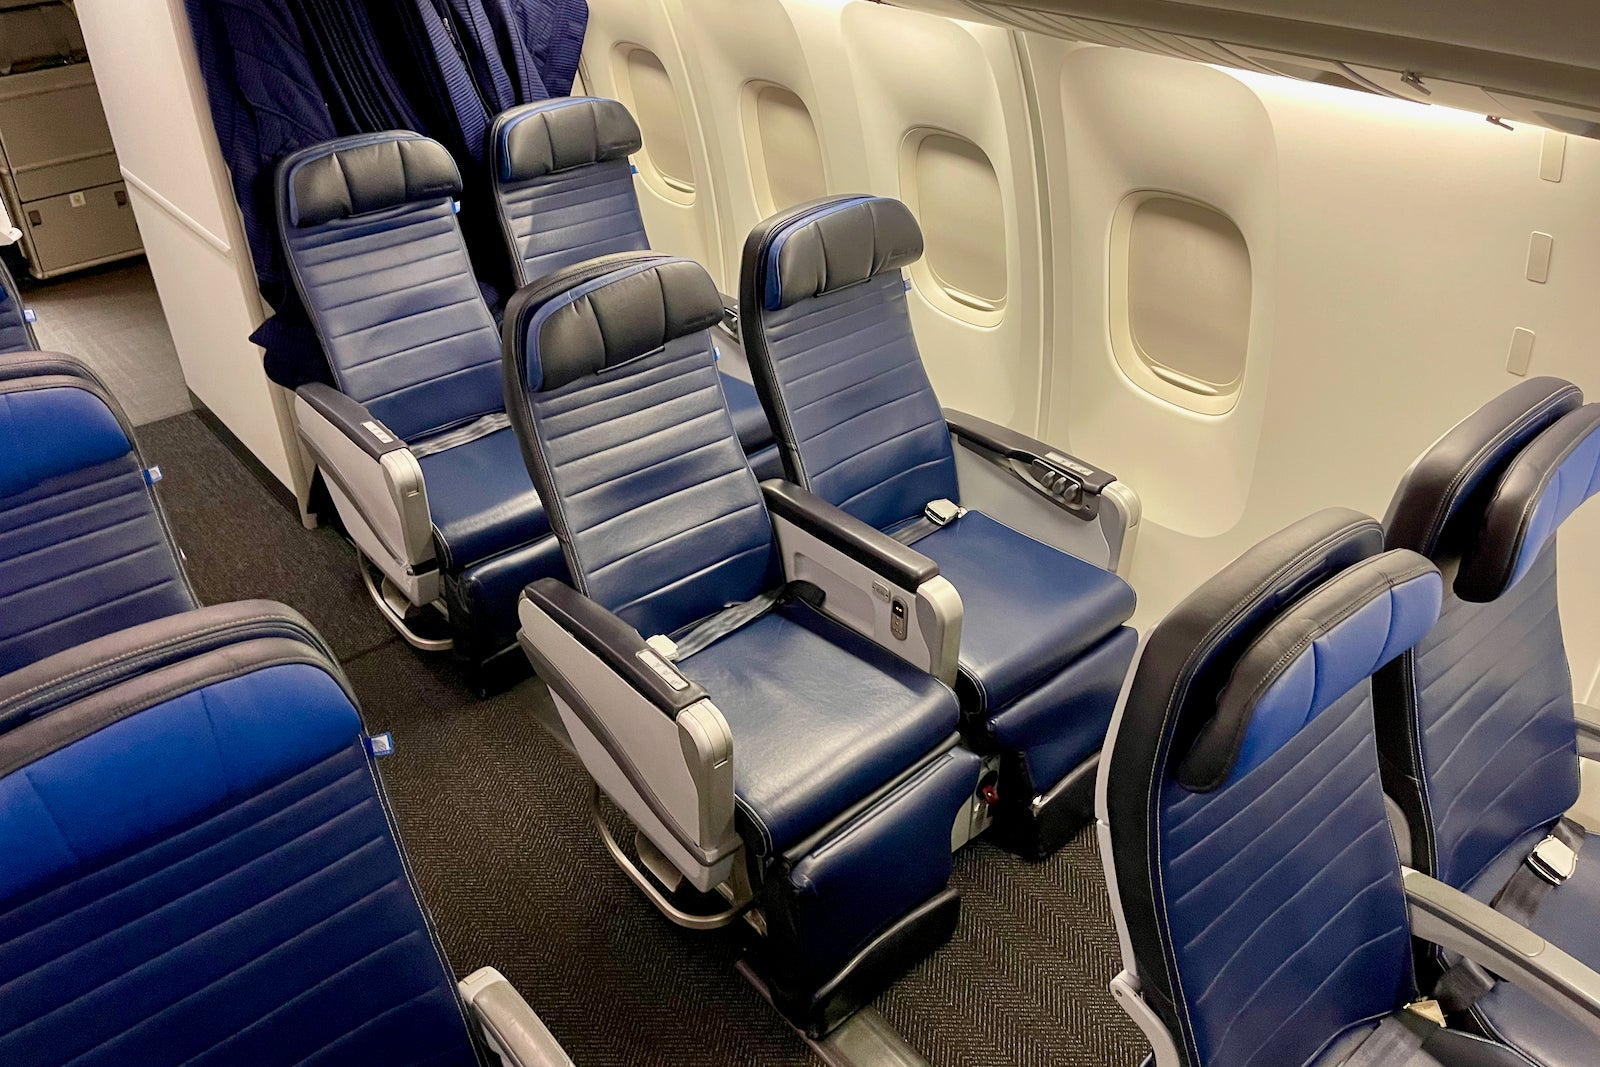 The 4 best coach seats in United Airlines' entire fleet, and how to snag them - The Points Guy